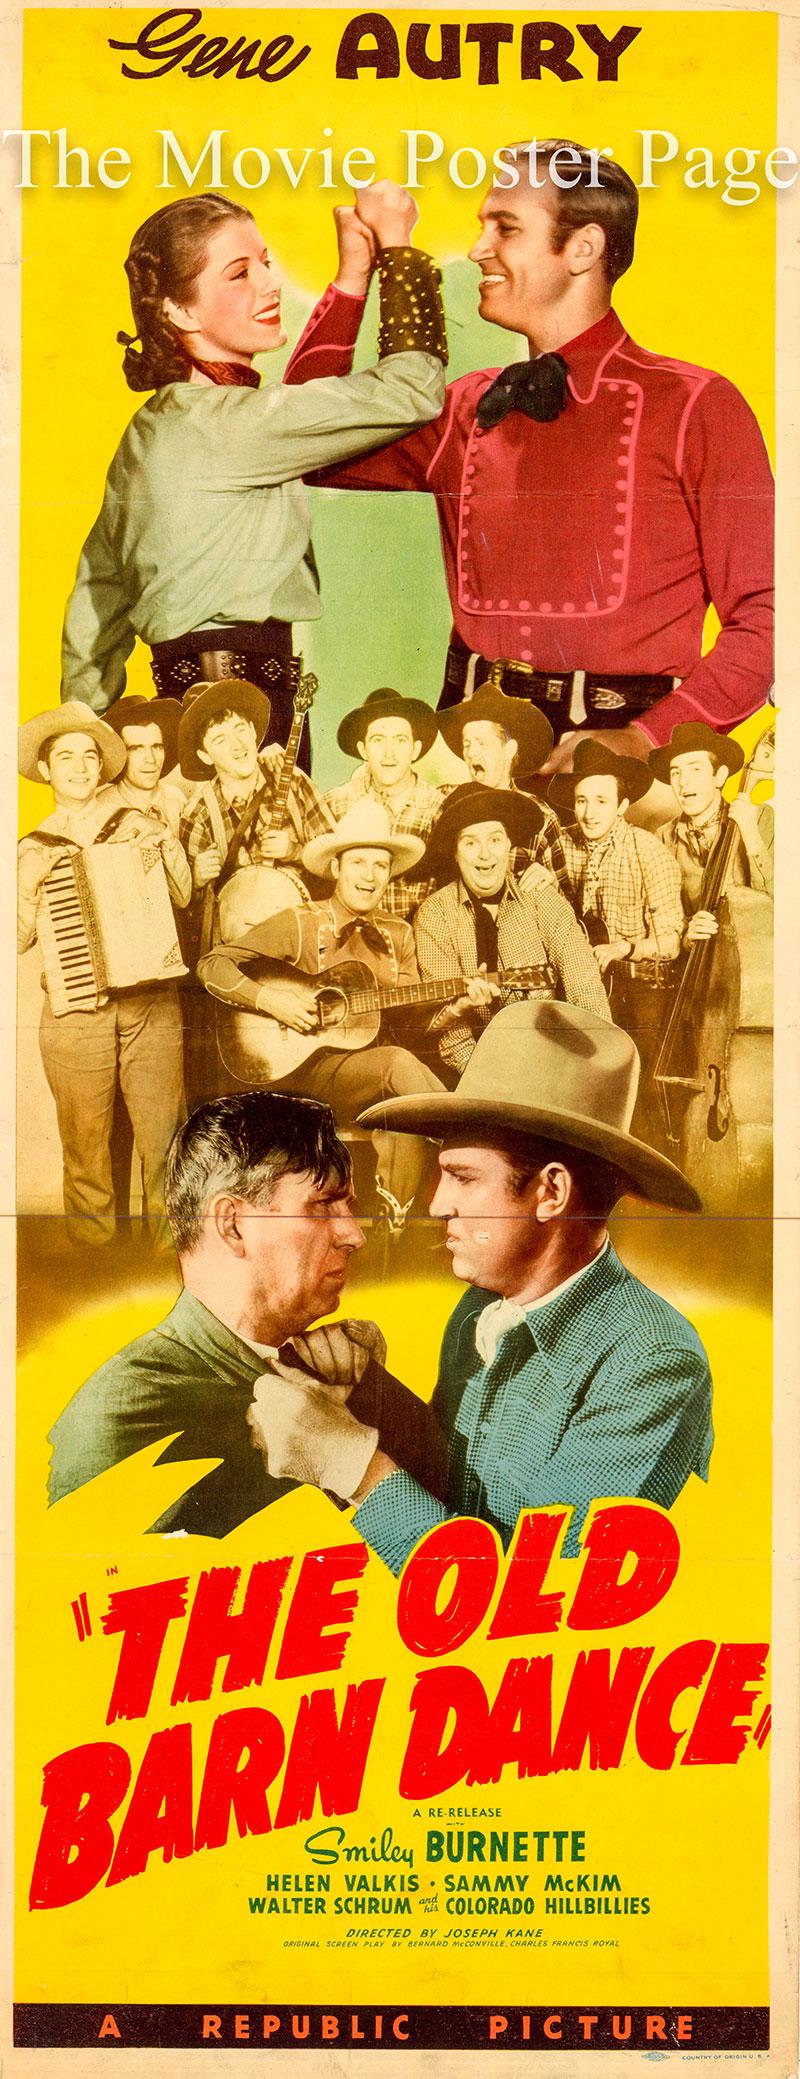 This is a picture of the US insert promotional poster for the 1944 rerelease of the 1938 Joseph Kane film The Old Barn Dance, starring Gene Autry and featuring the Stafford Sisters and Walt Shrum and His Colorado Hillbillies.